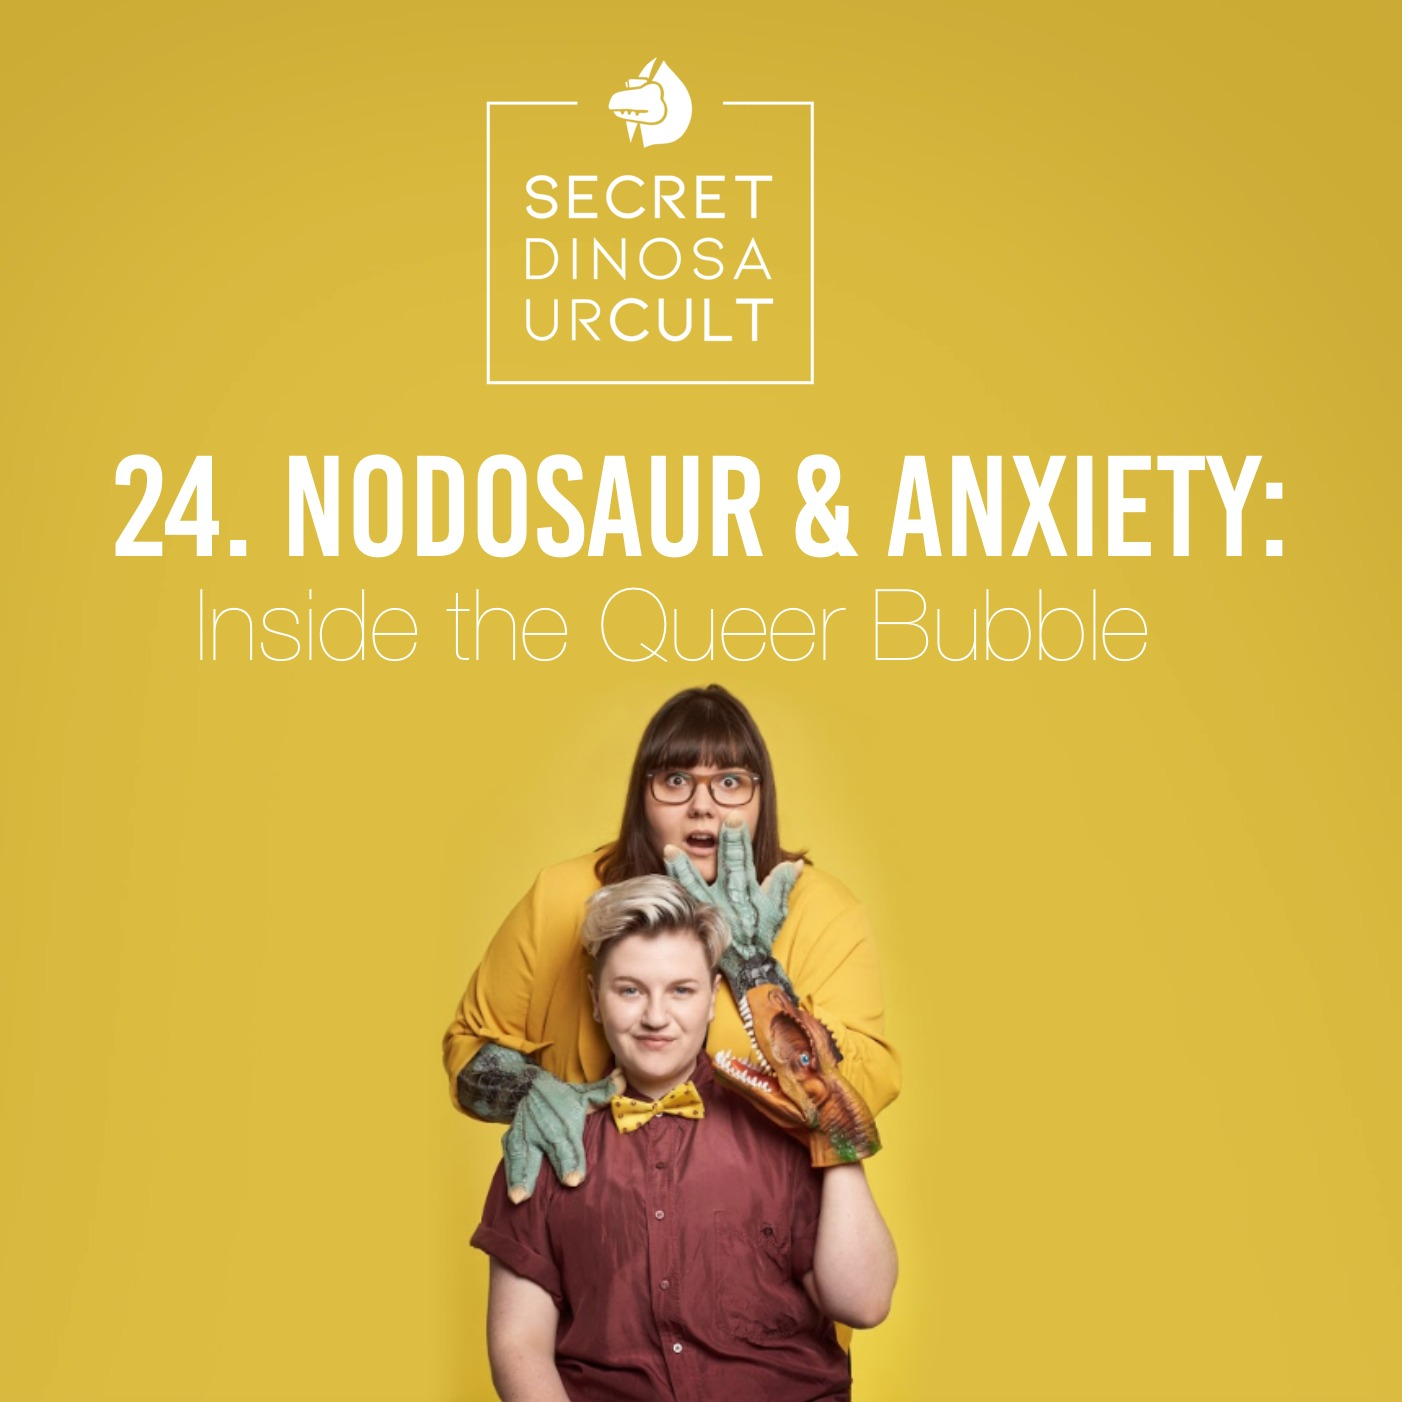 24. Nodosaur & Anxiety: Inside the Queer Bubble